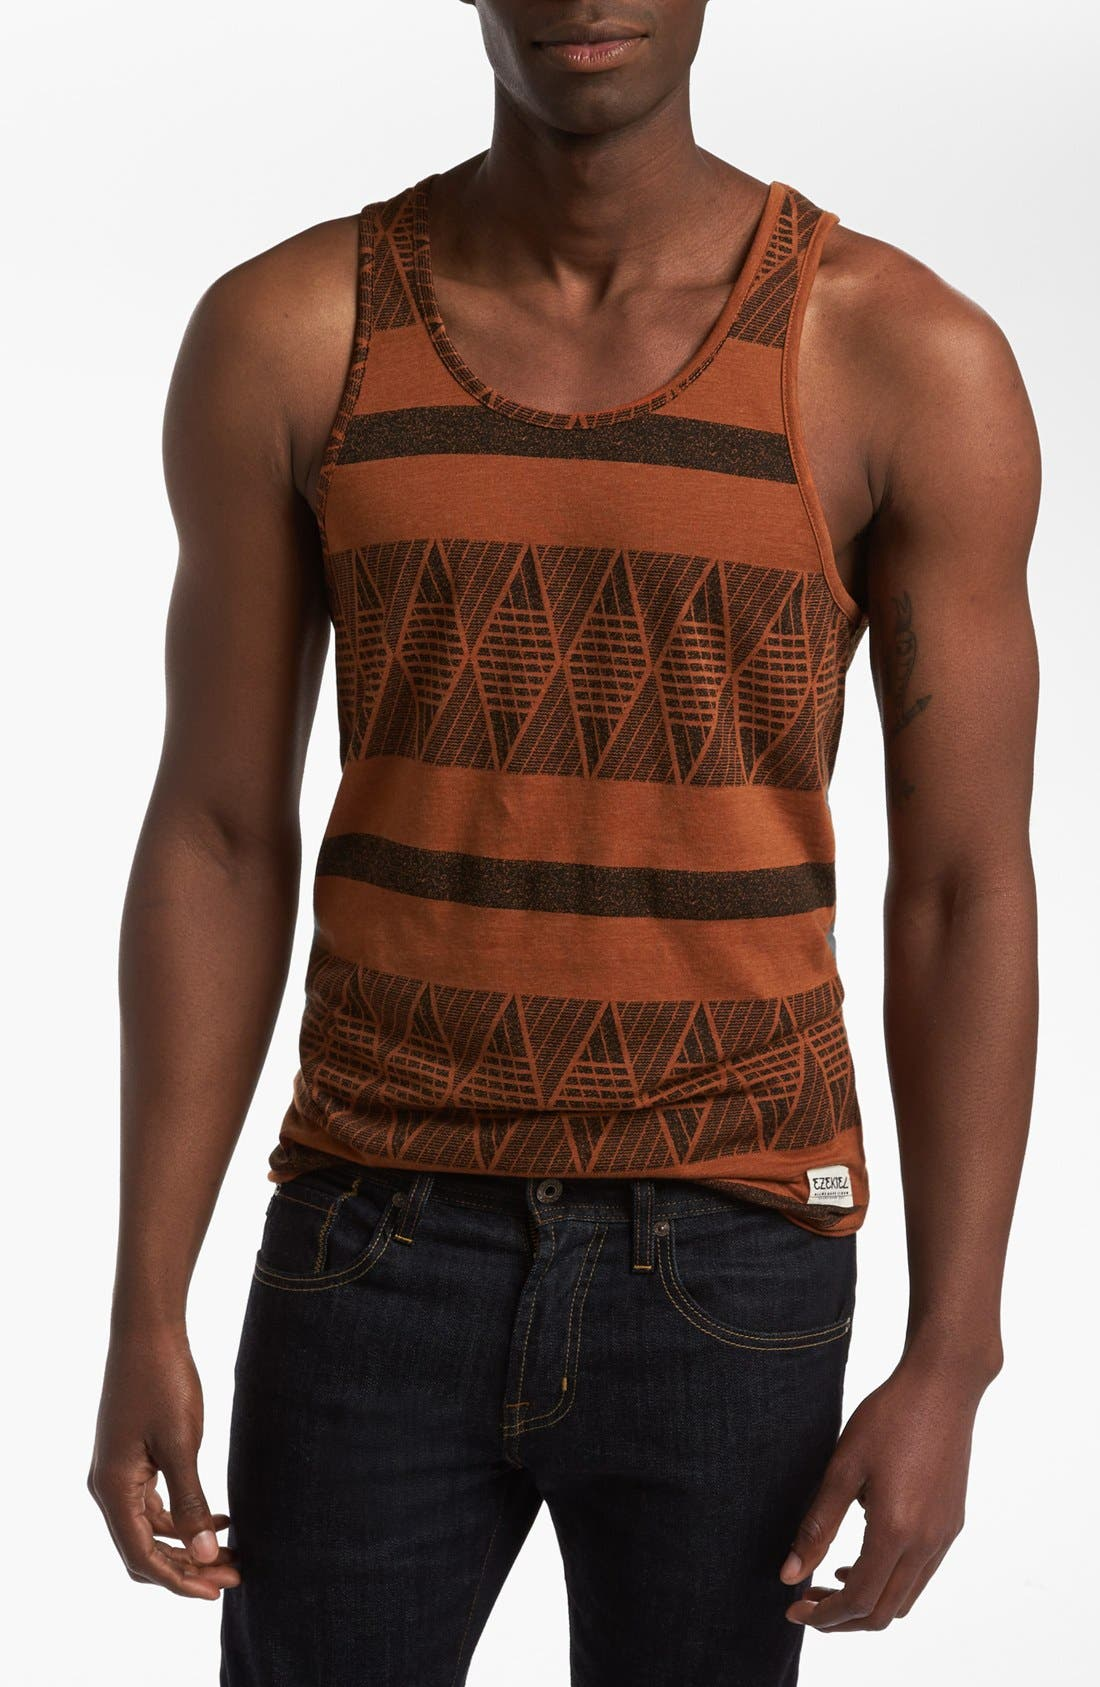 Alternate Image 1 Selected - Ezekiel 'Goodtimes' Tank Top